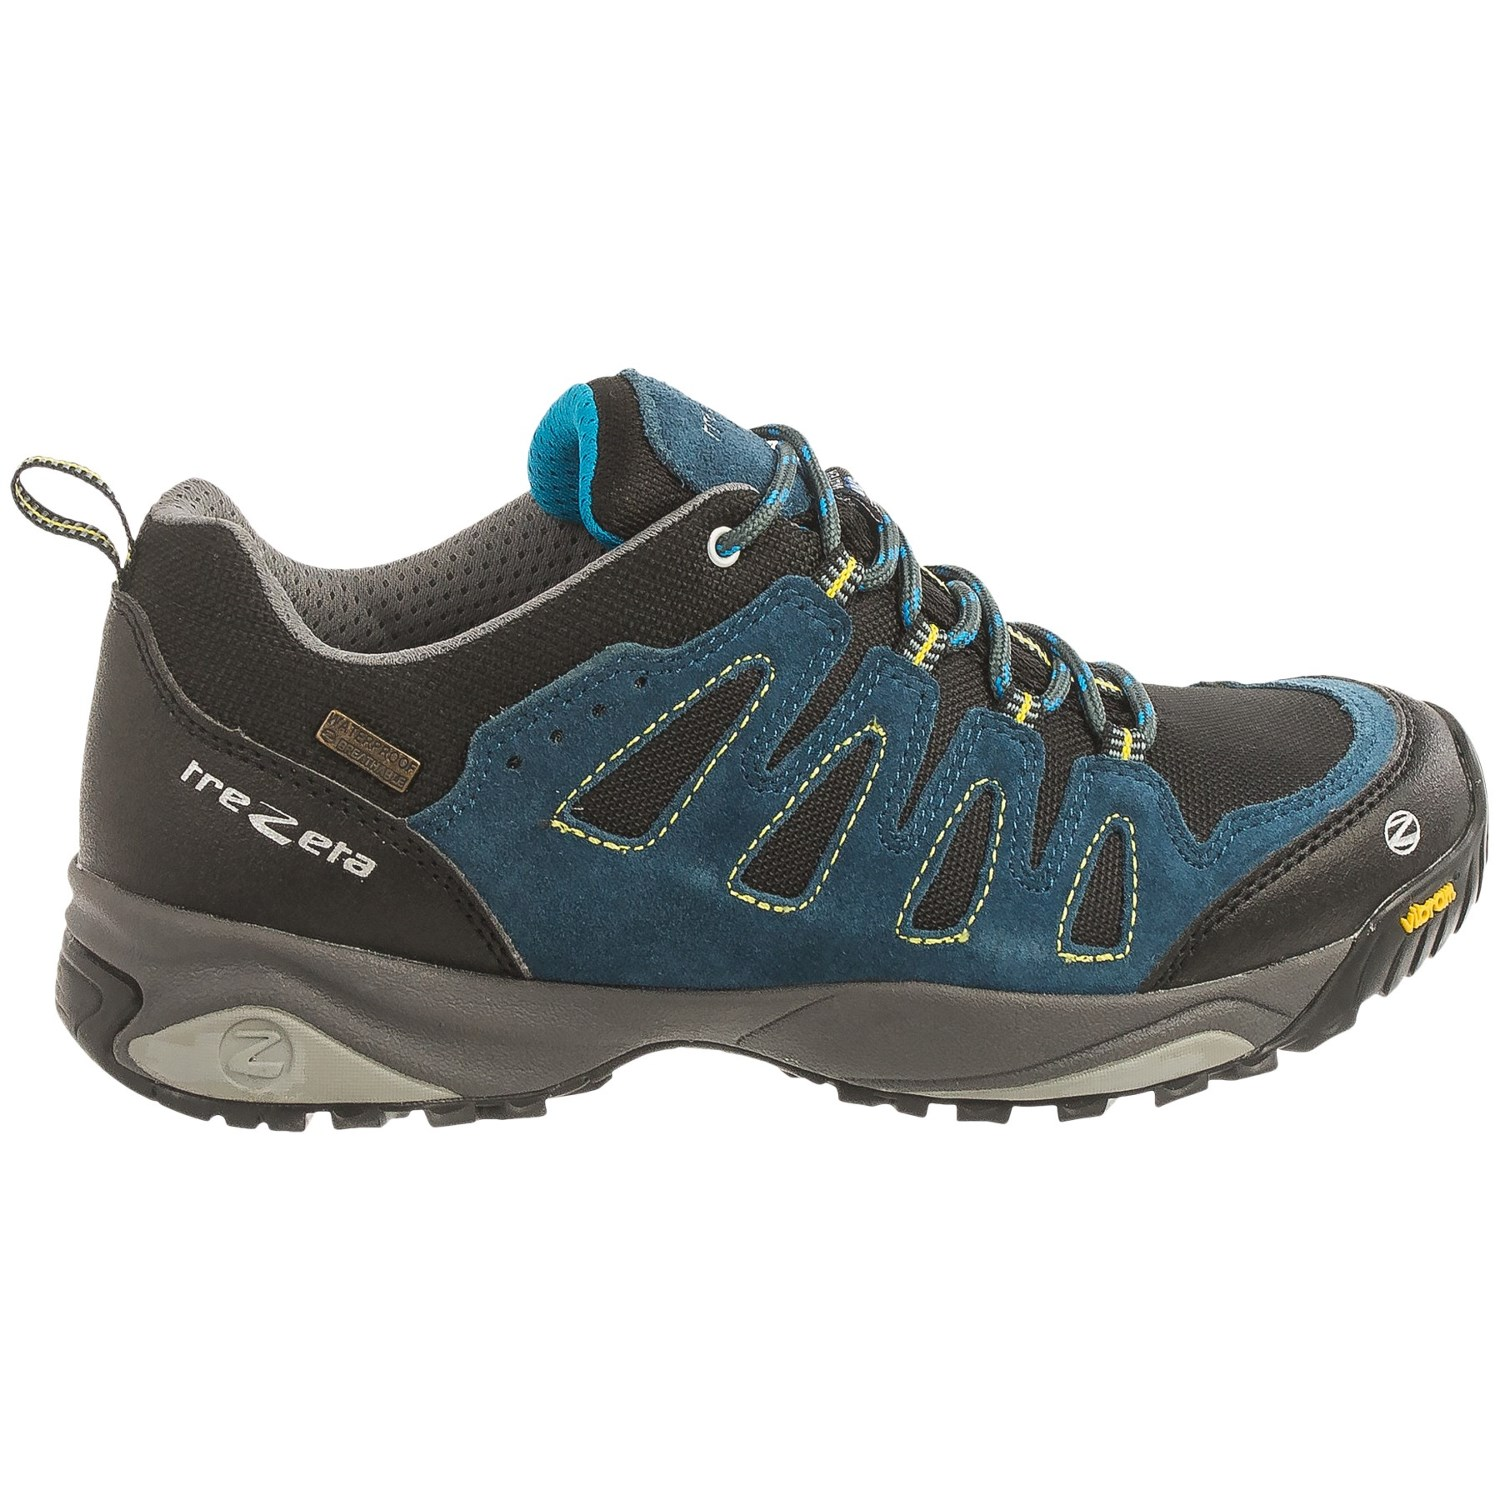 Trezeta Chinook Low Hiking Shoes (For Men) - Save 50%